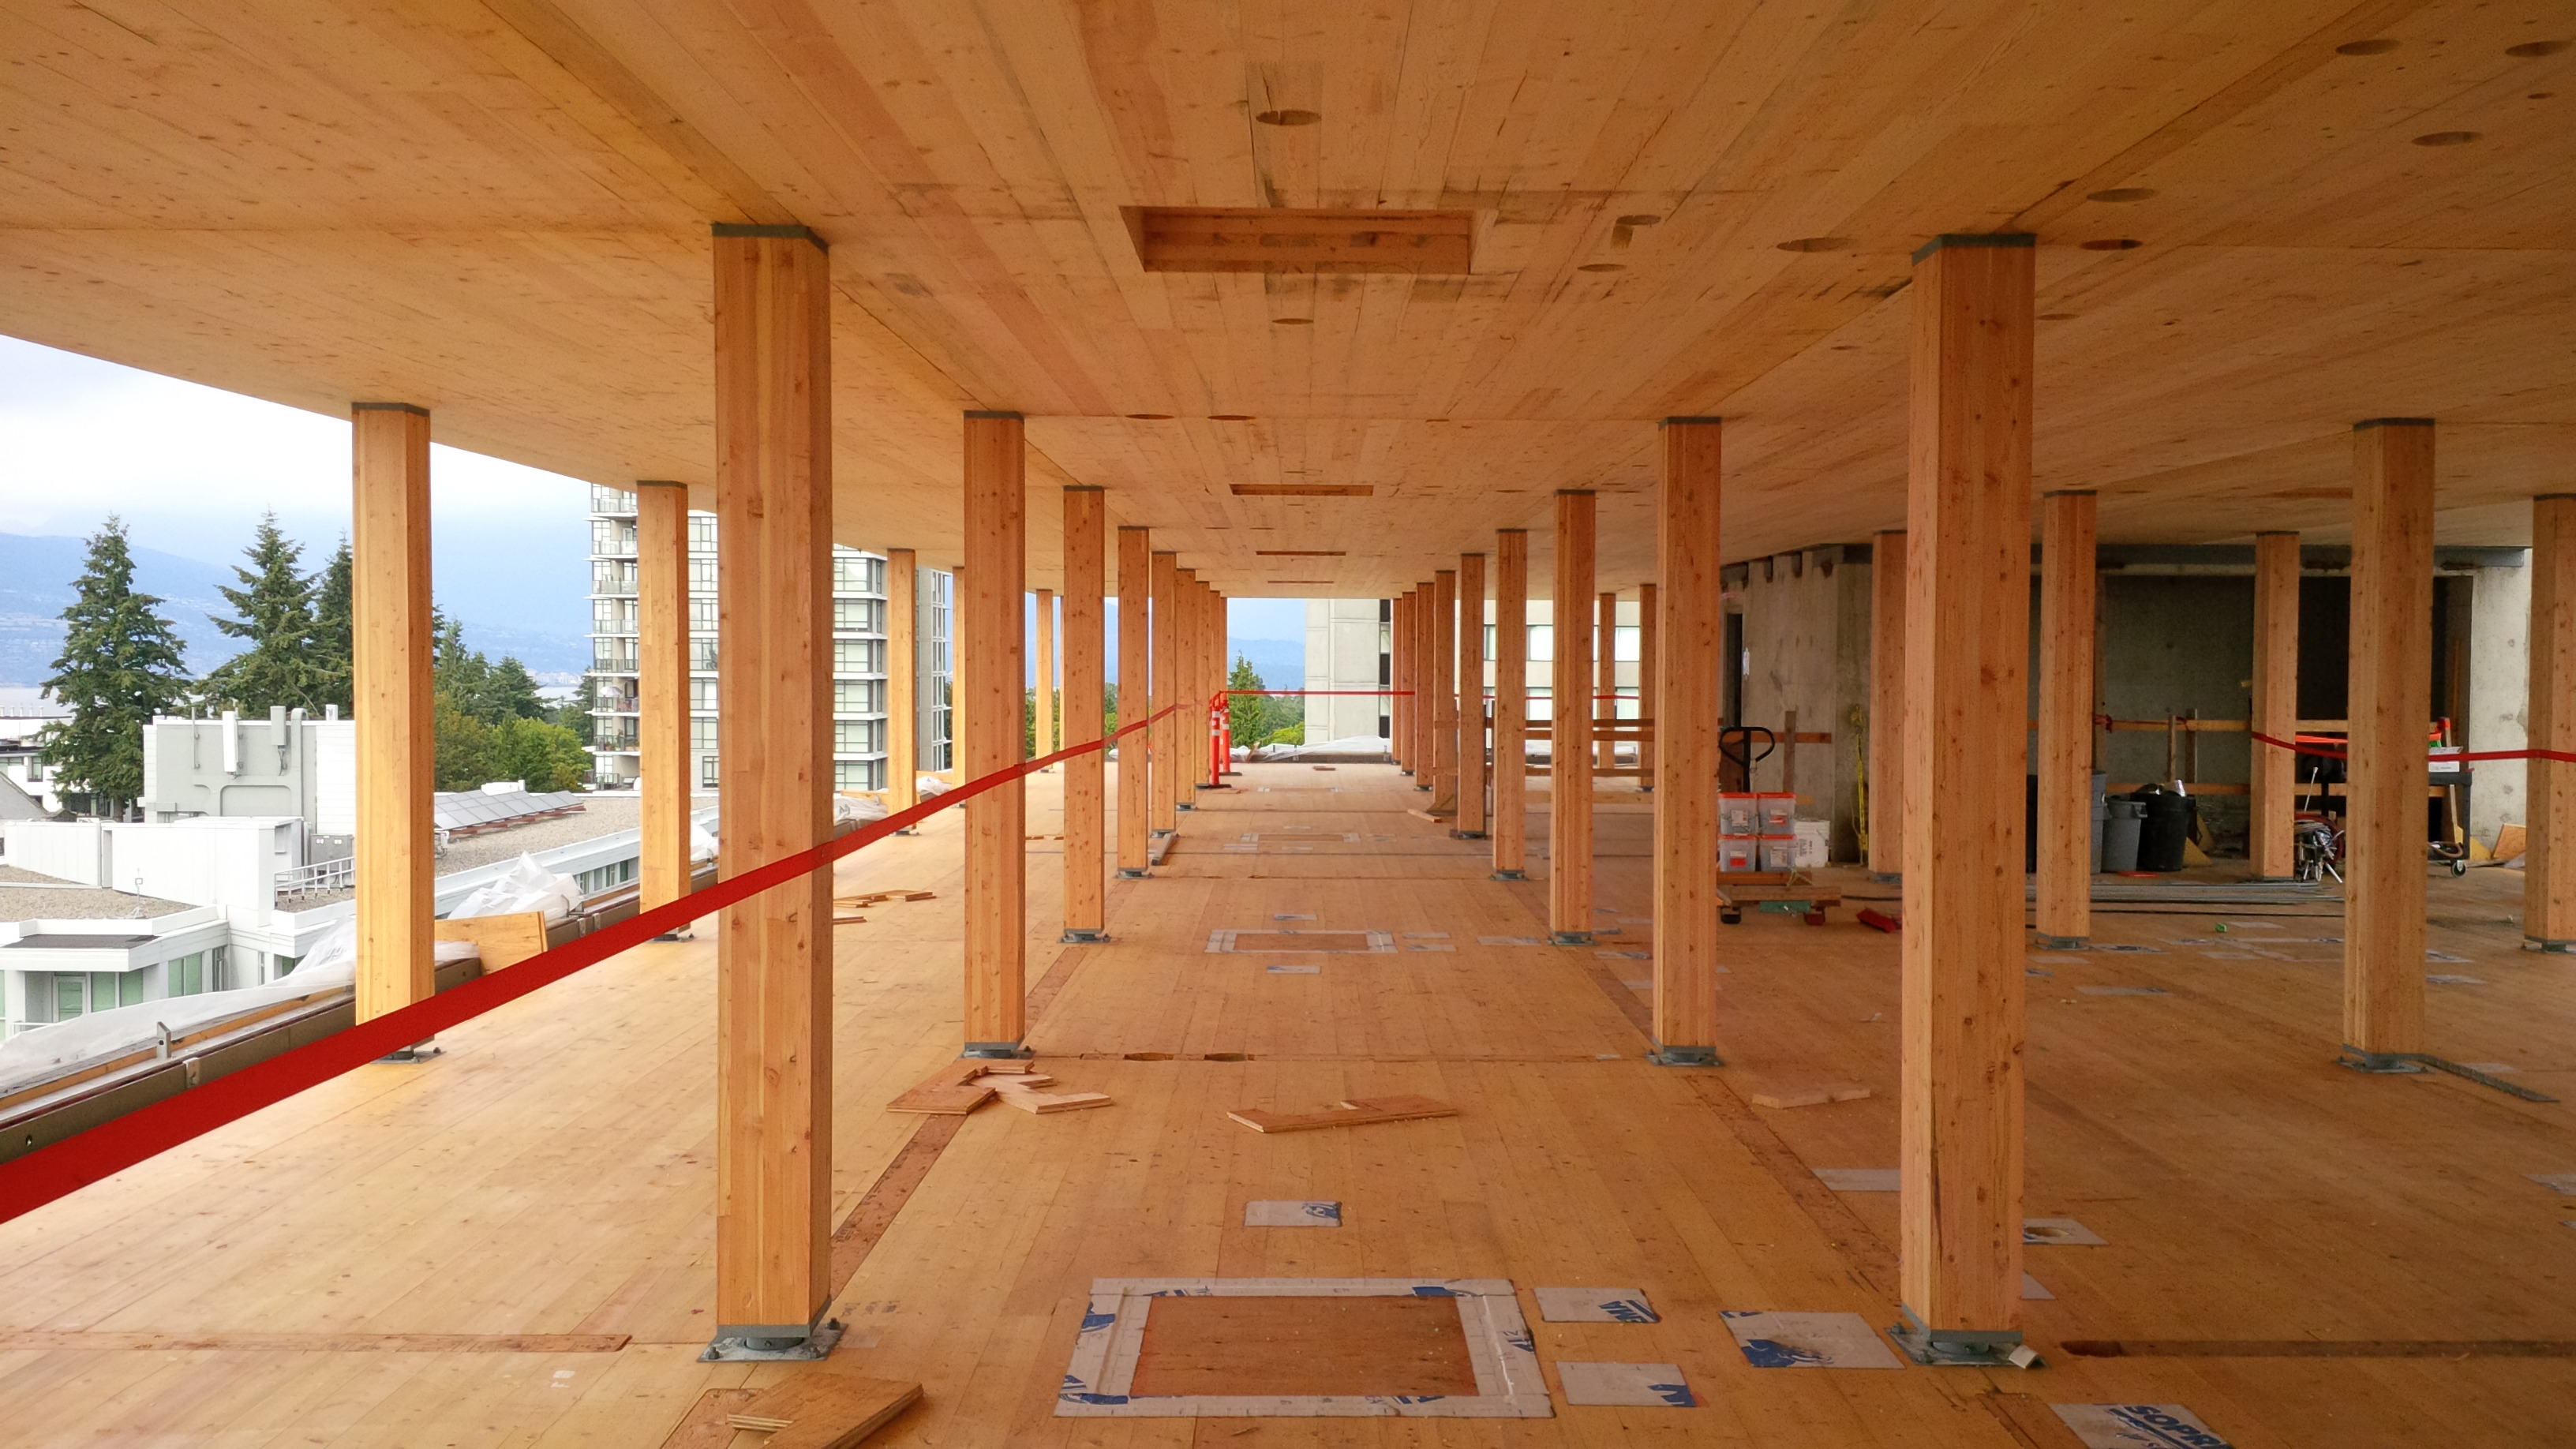 Image of interior of new UBC building under construction showing CLT floor and ceiling, as well as glulam posts